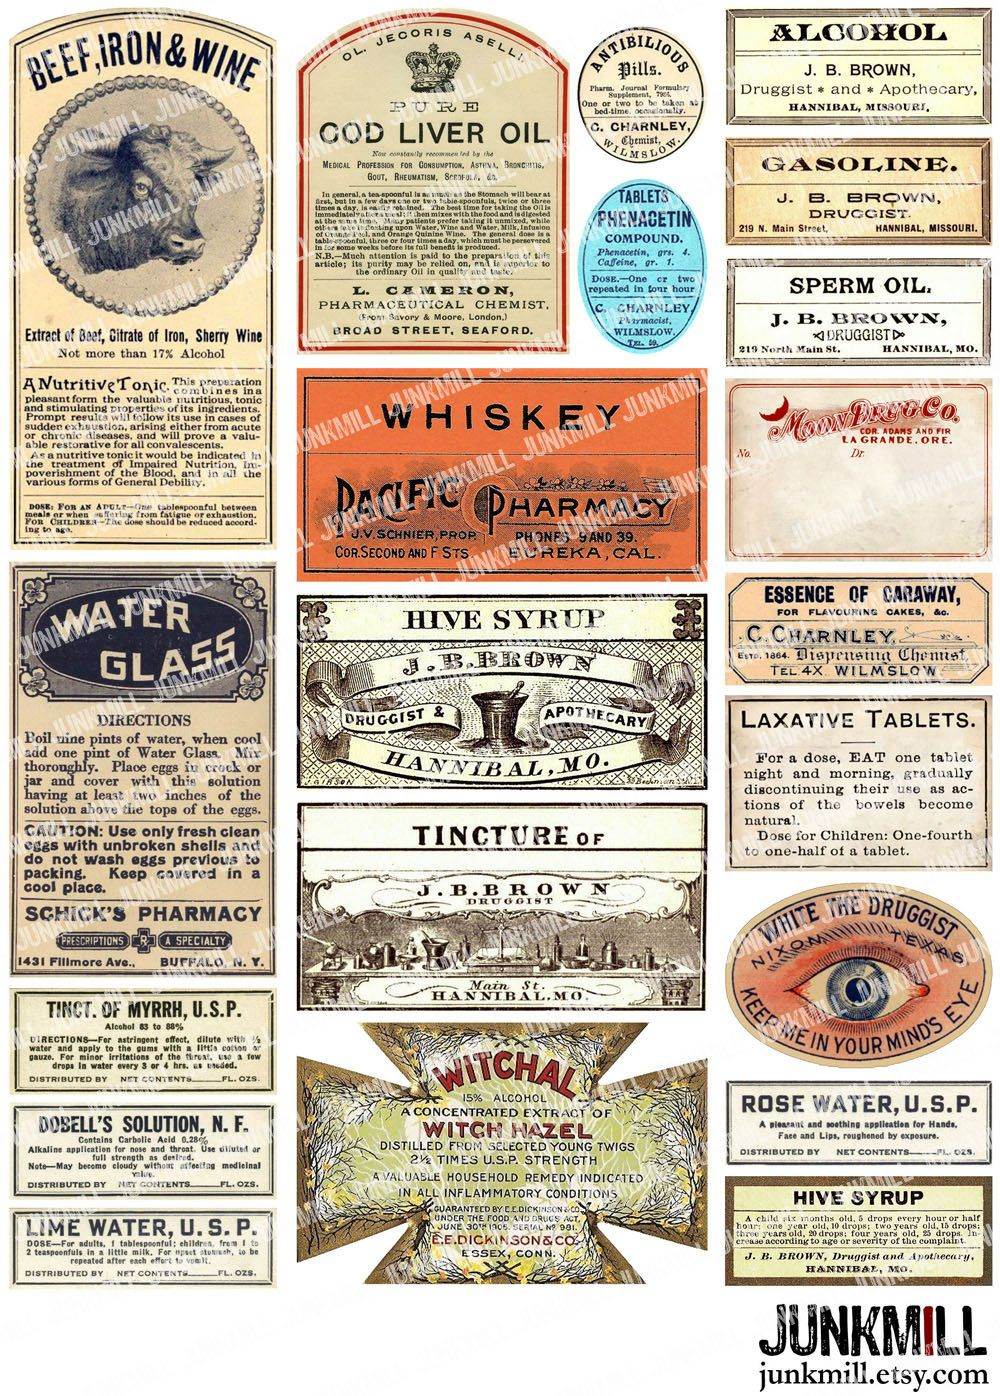 Apothecary Vintage Apothecary And Medicine Labels Antique Labels For Drug Stores Snake Oil Medici Printable Collage Sheet Collage Sheet Apothecary Labels